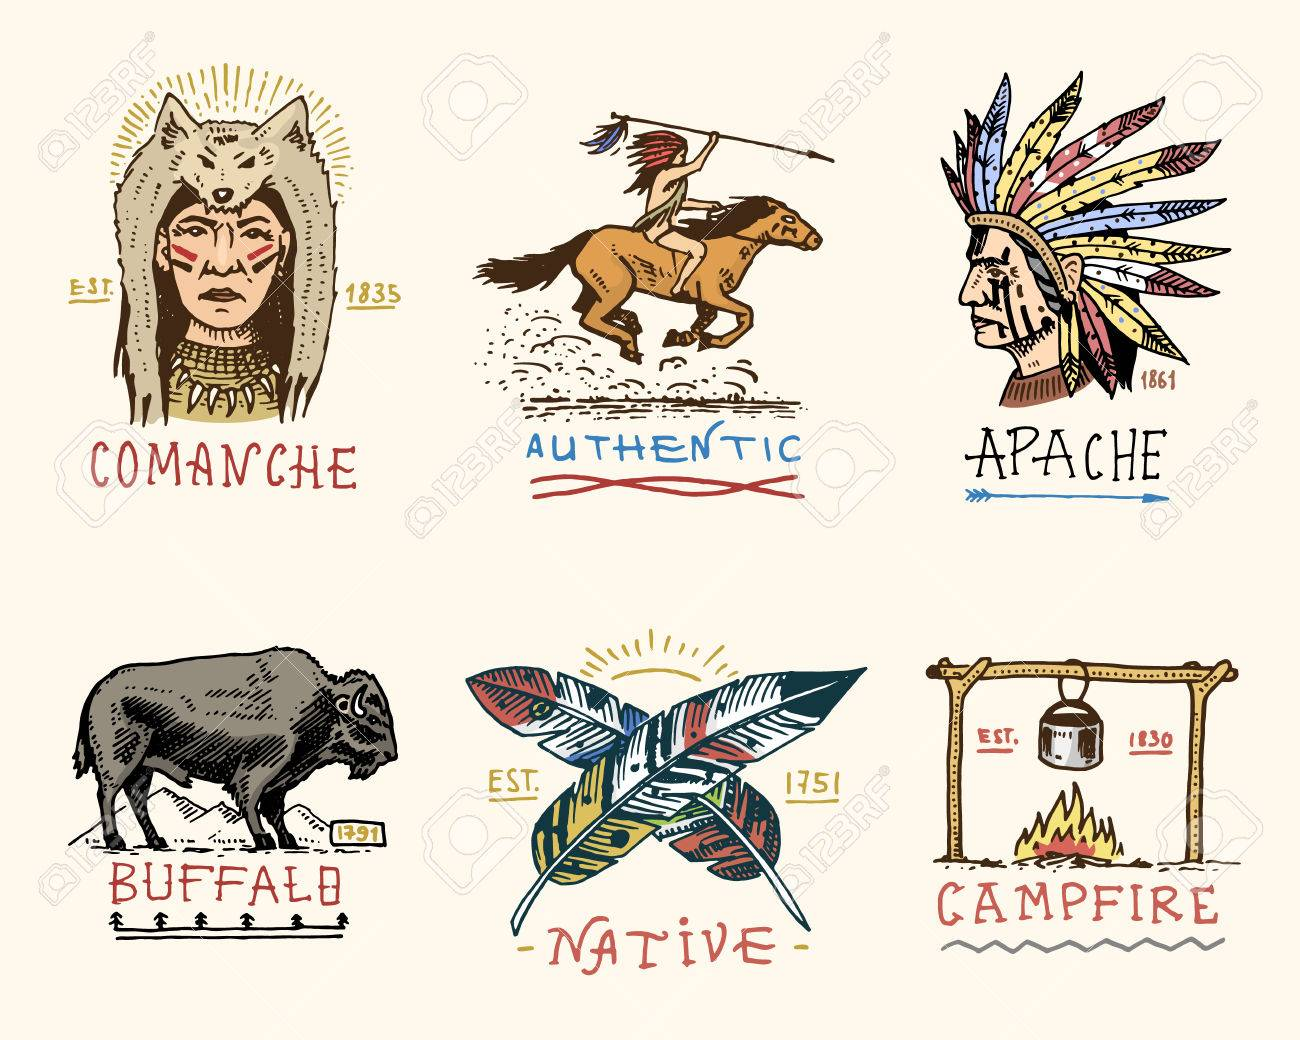 set of engraved vintage, hand drawn, old, labels or badges for indian or native american. buffalo, face with feathers, horse rider, apache or comanche, campfire and authentic. Stock Vector - 80730130